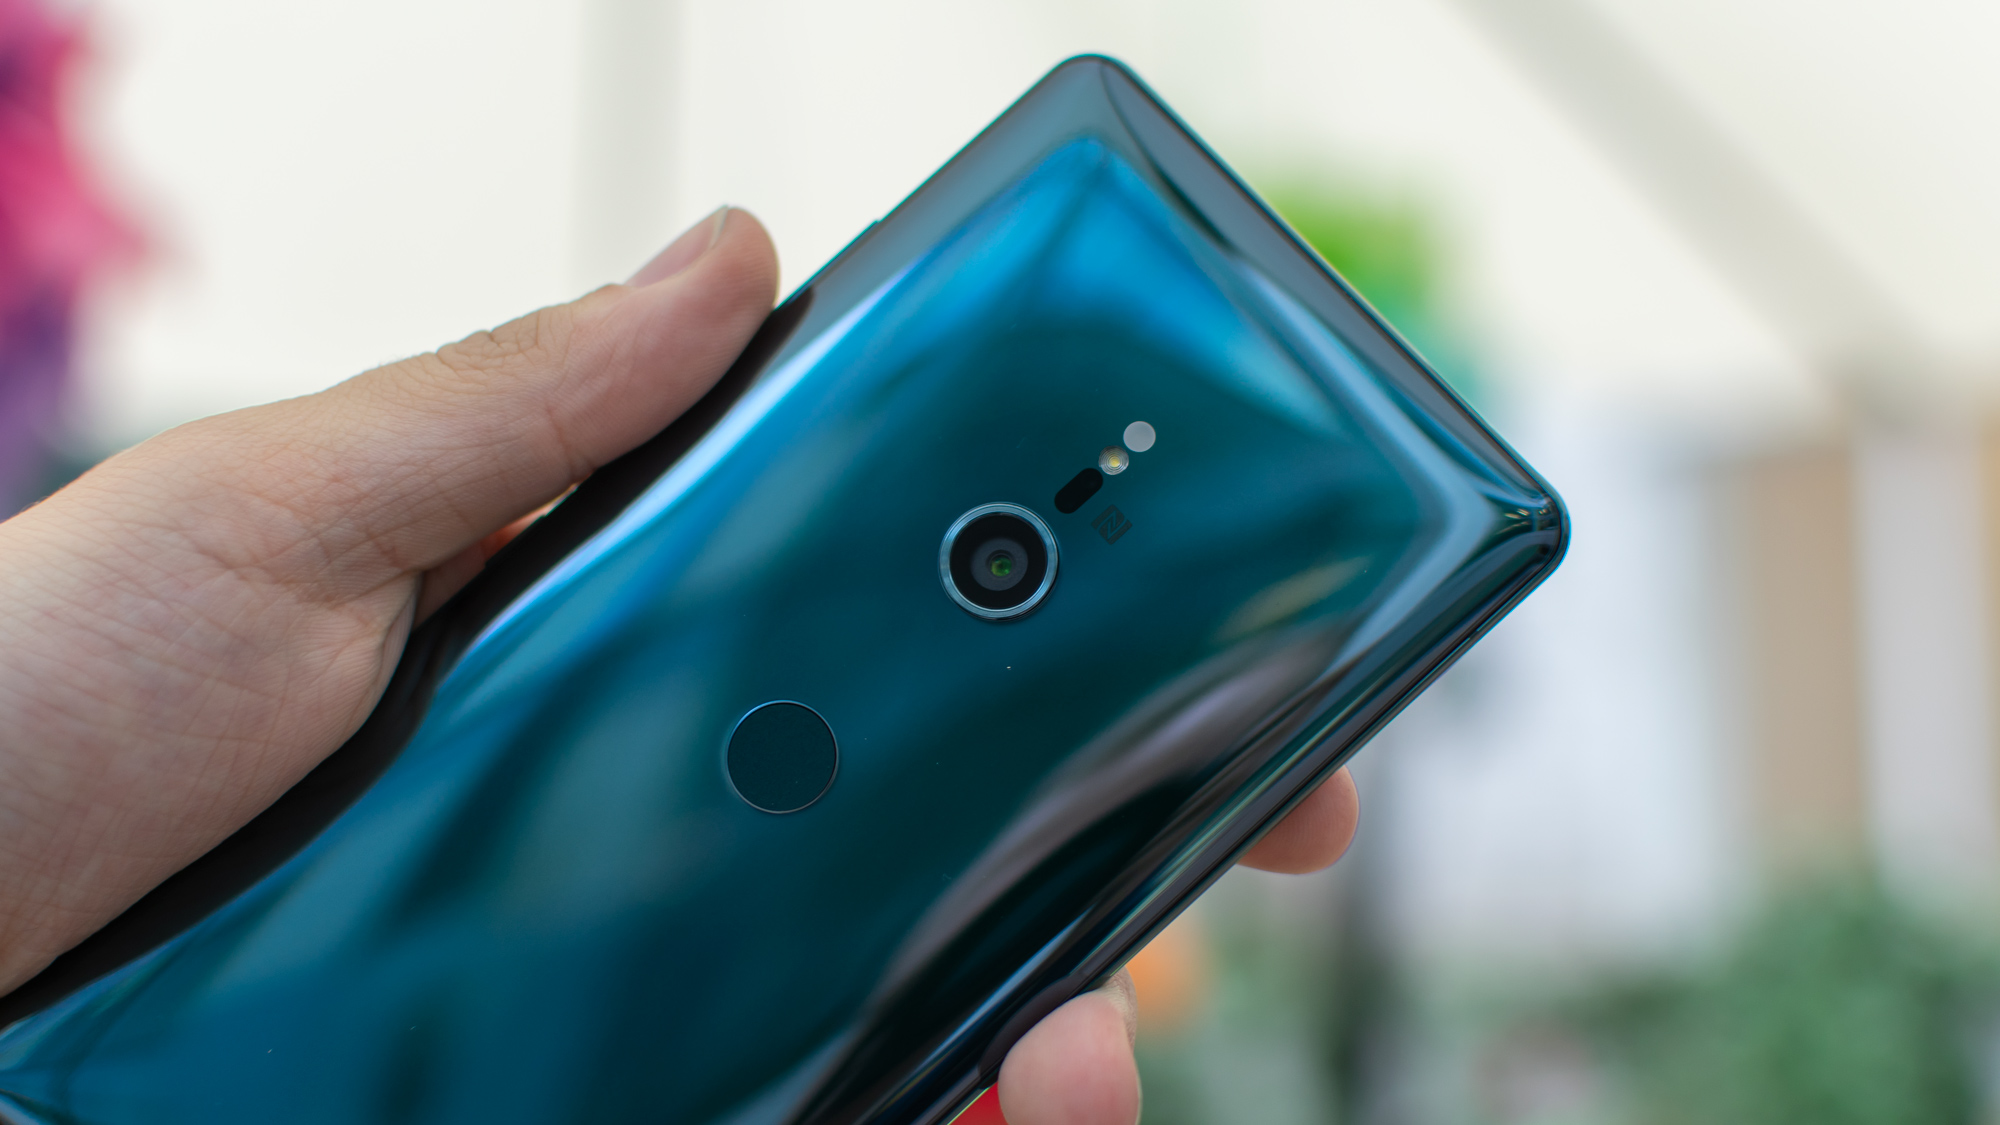 Sony Xperia XZ3 LEAKS In Pictures Ahead Of Launch